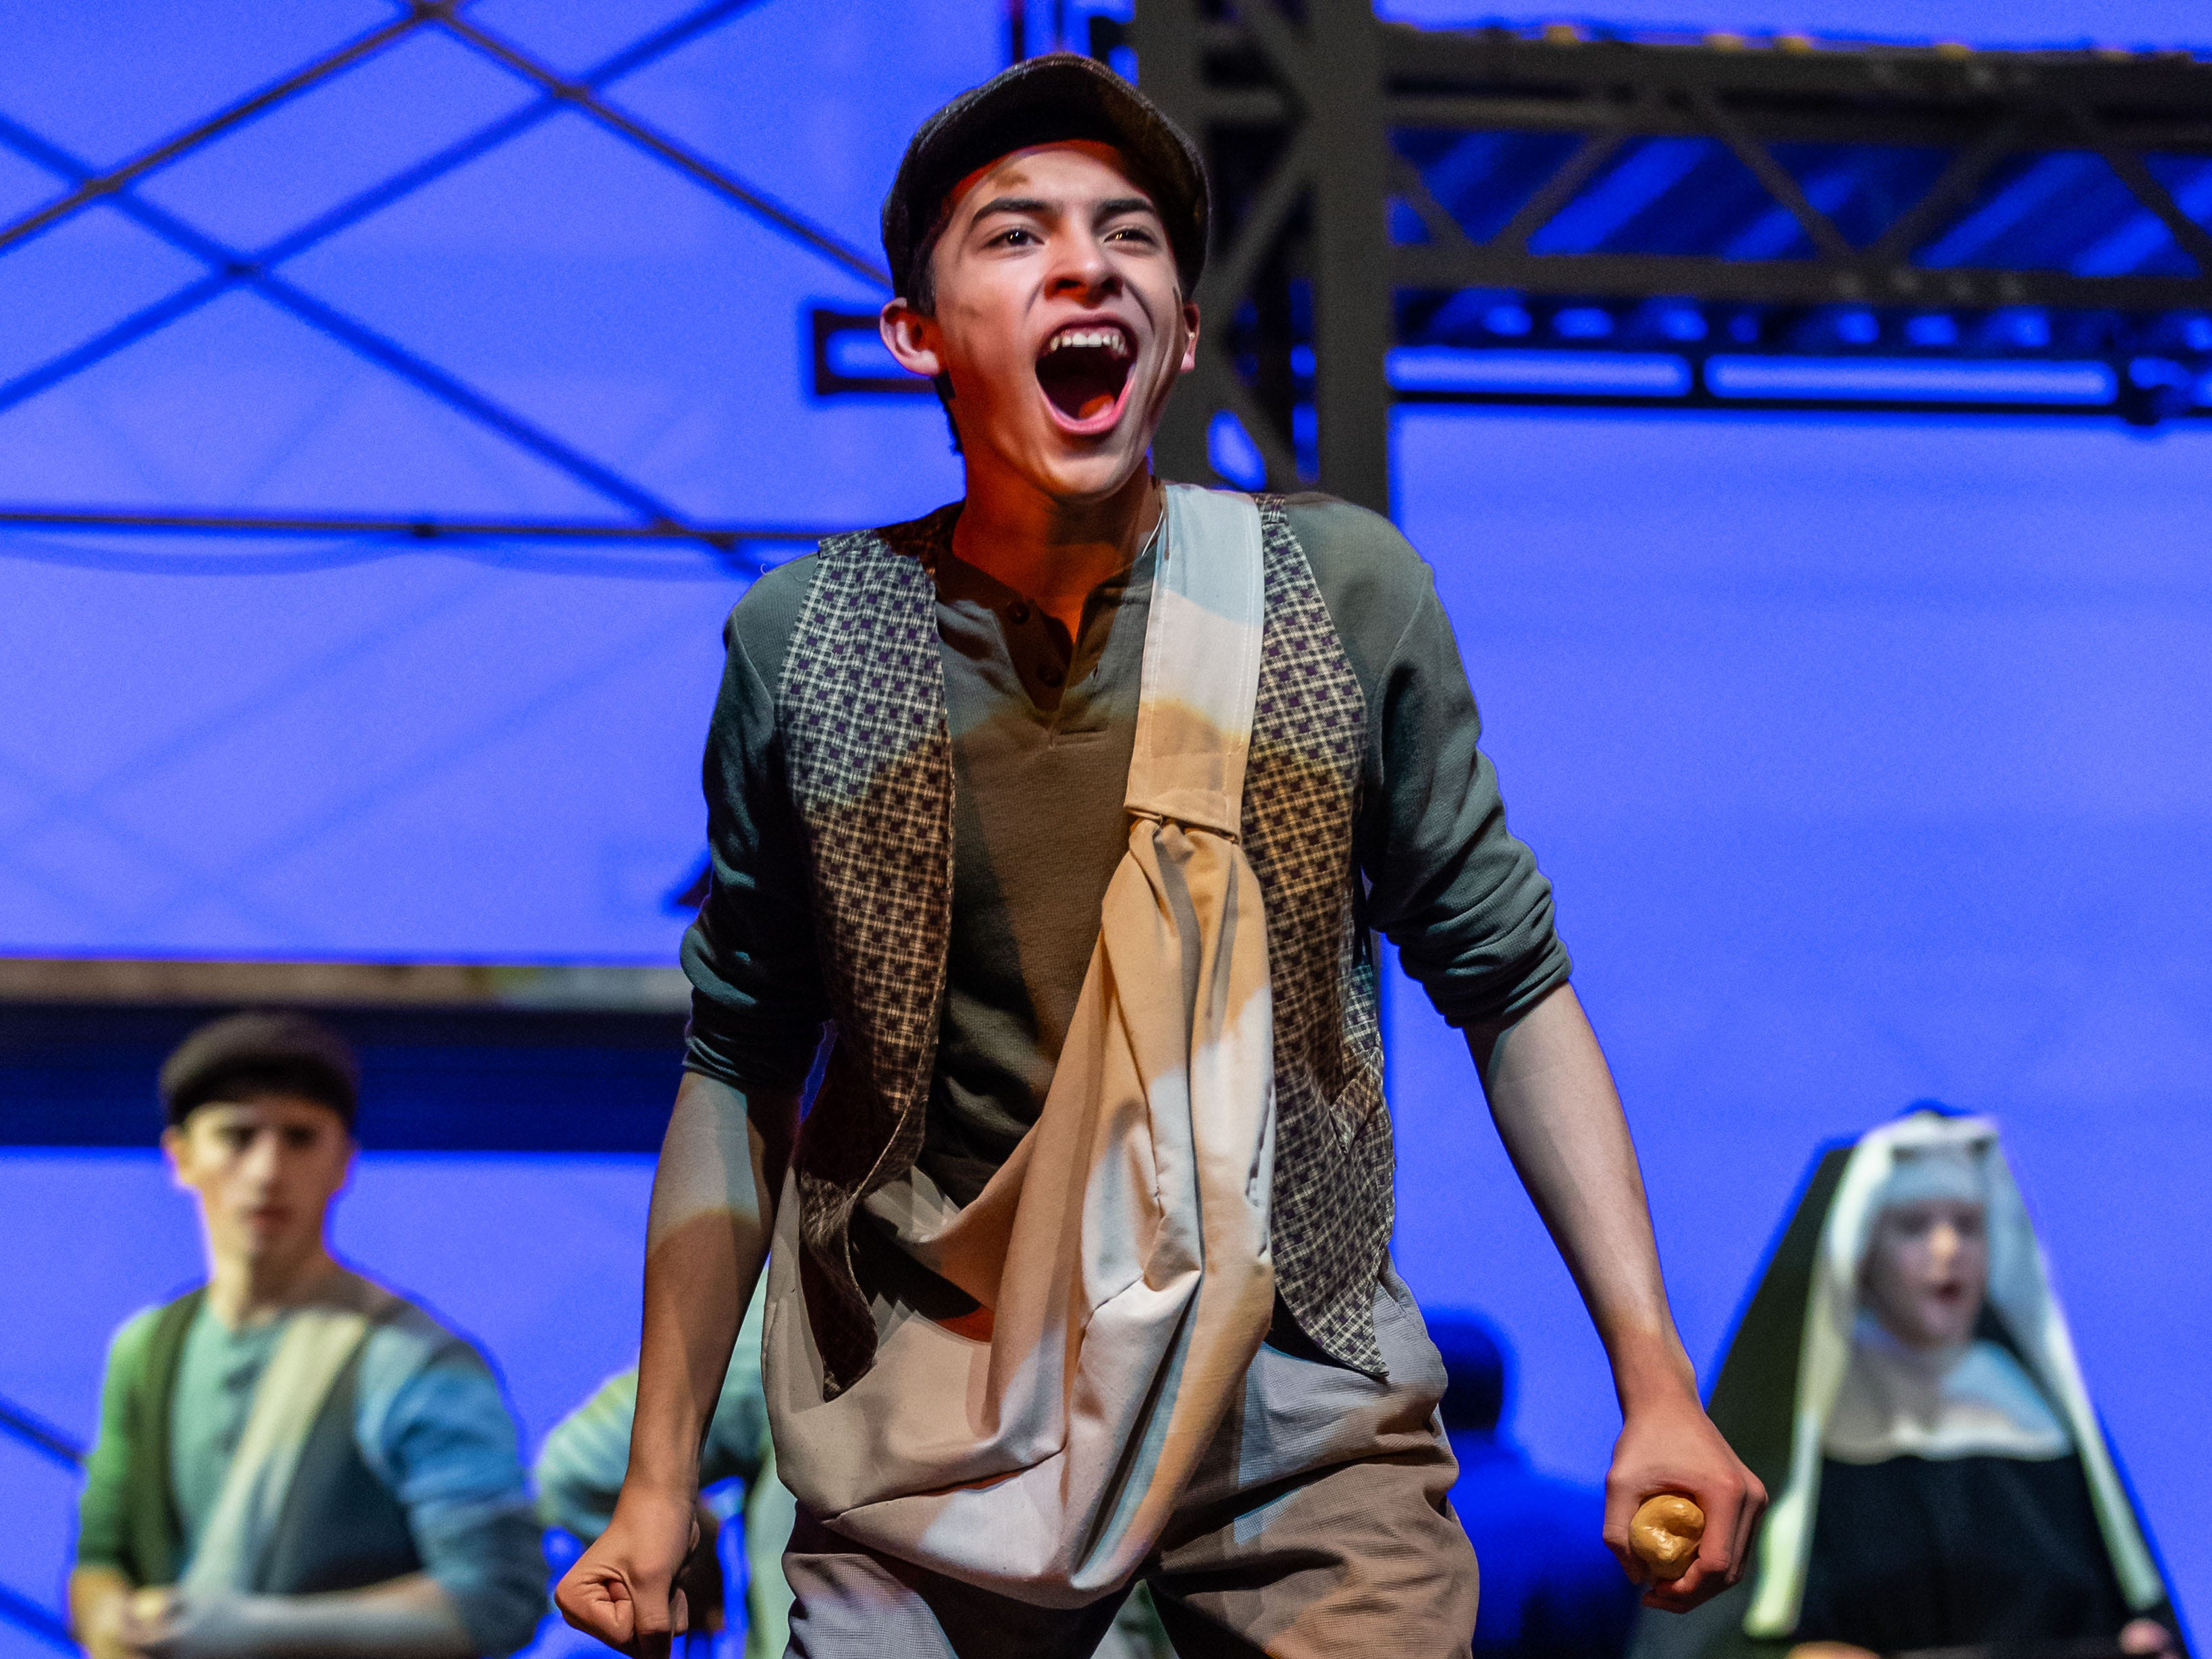 Dominican High School drama student Noel Rubalcava performs a scene from Disney's NEWSIES during dress rehearsal on Monday, Feb. 11, 2019. Public performances are Feb. 15-24, Thursday through Saturday at 7 p.m. and Sunday at 2 p.m. Visit www.dominicanhighschool.com for info and tickets.